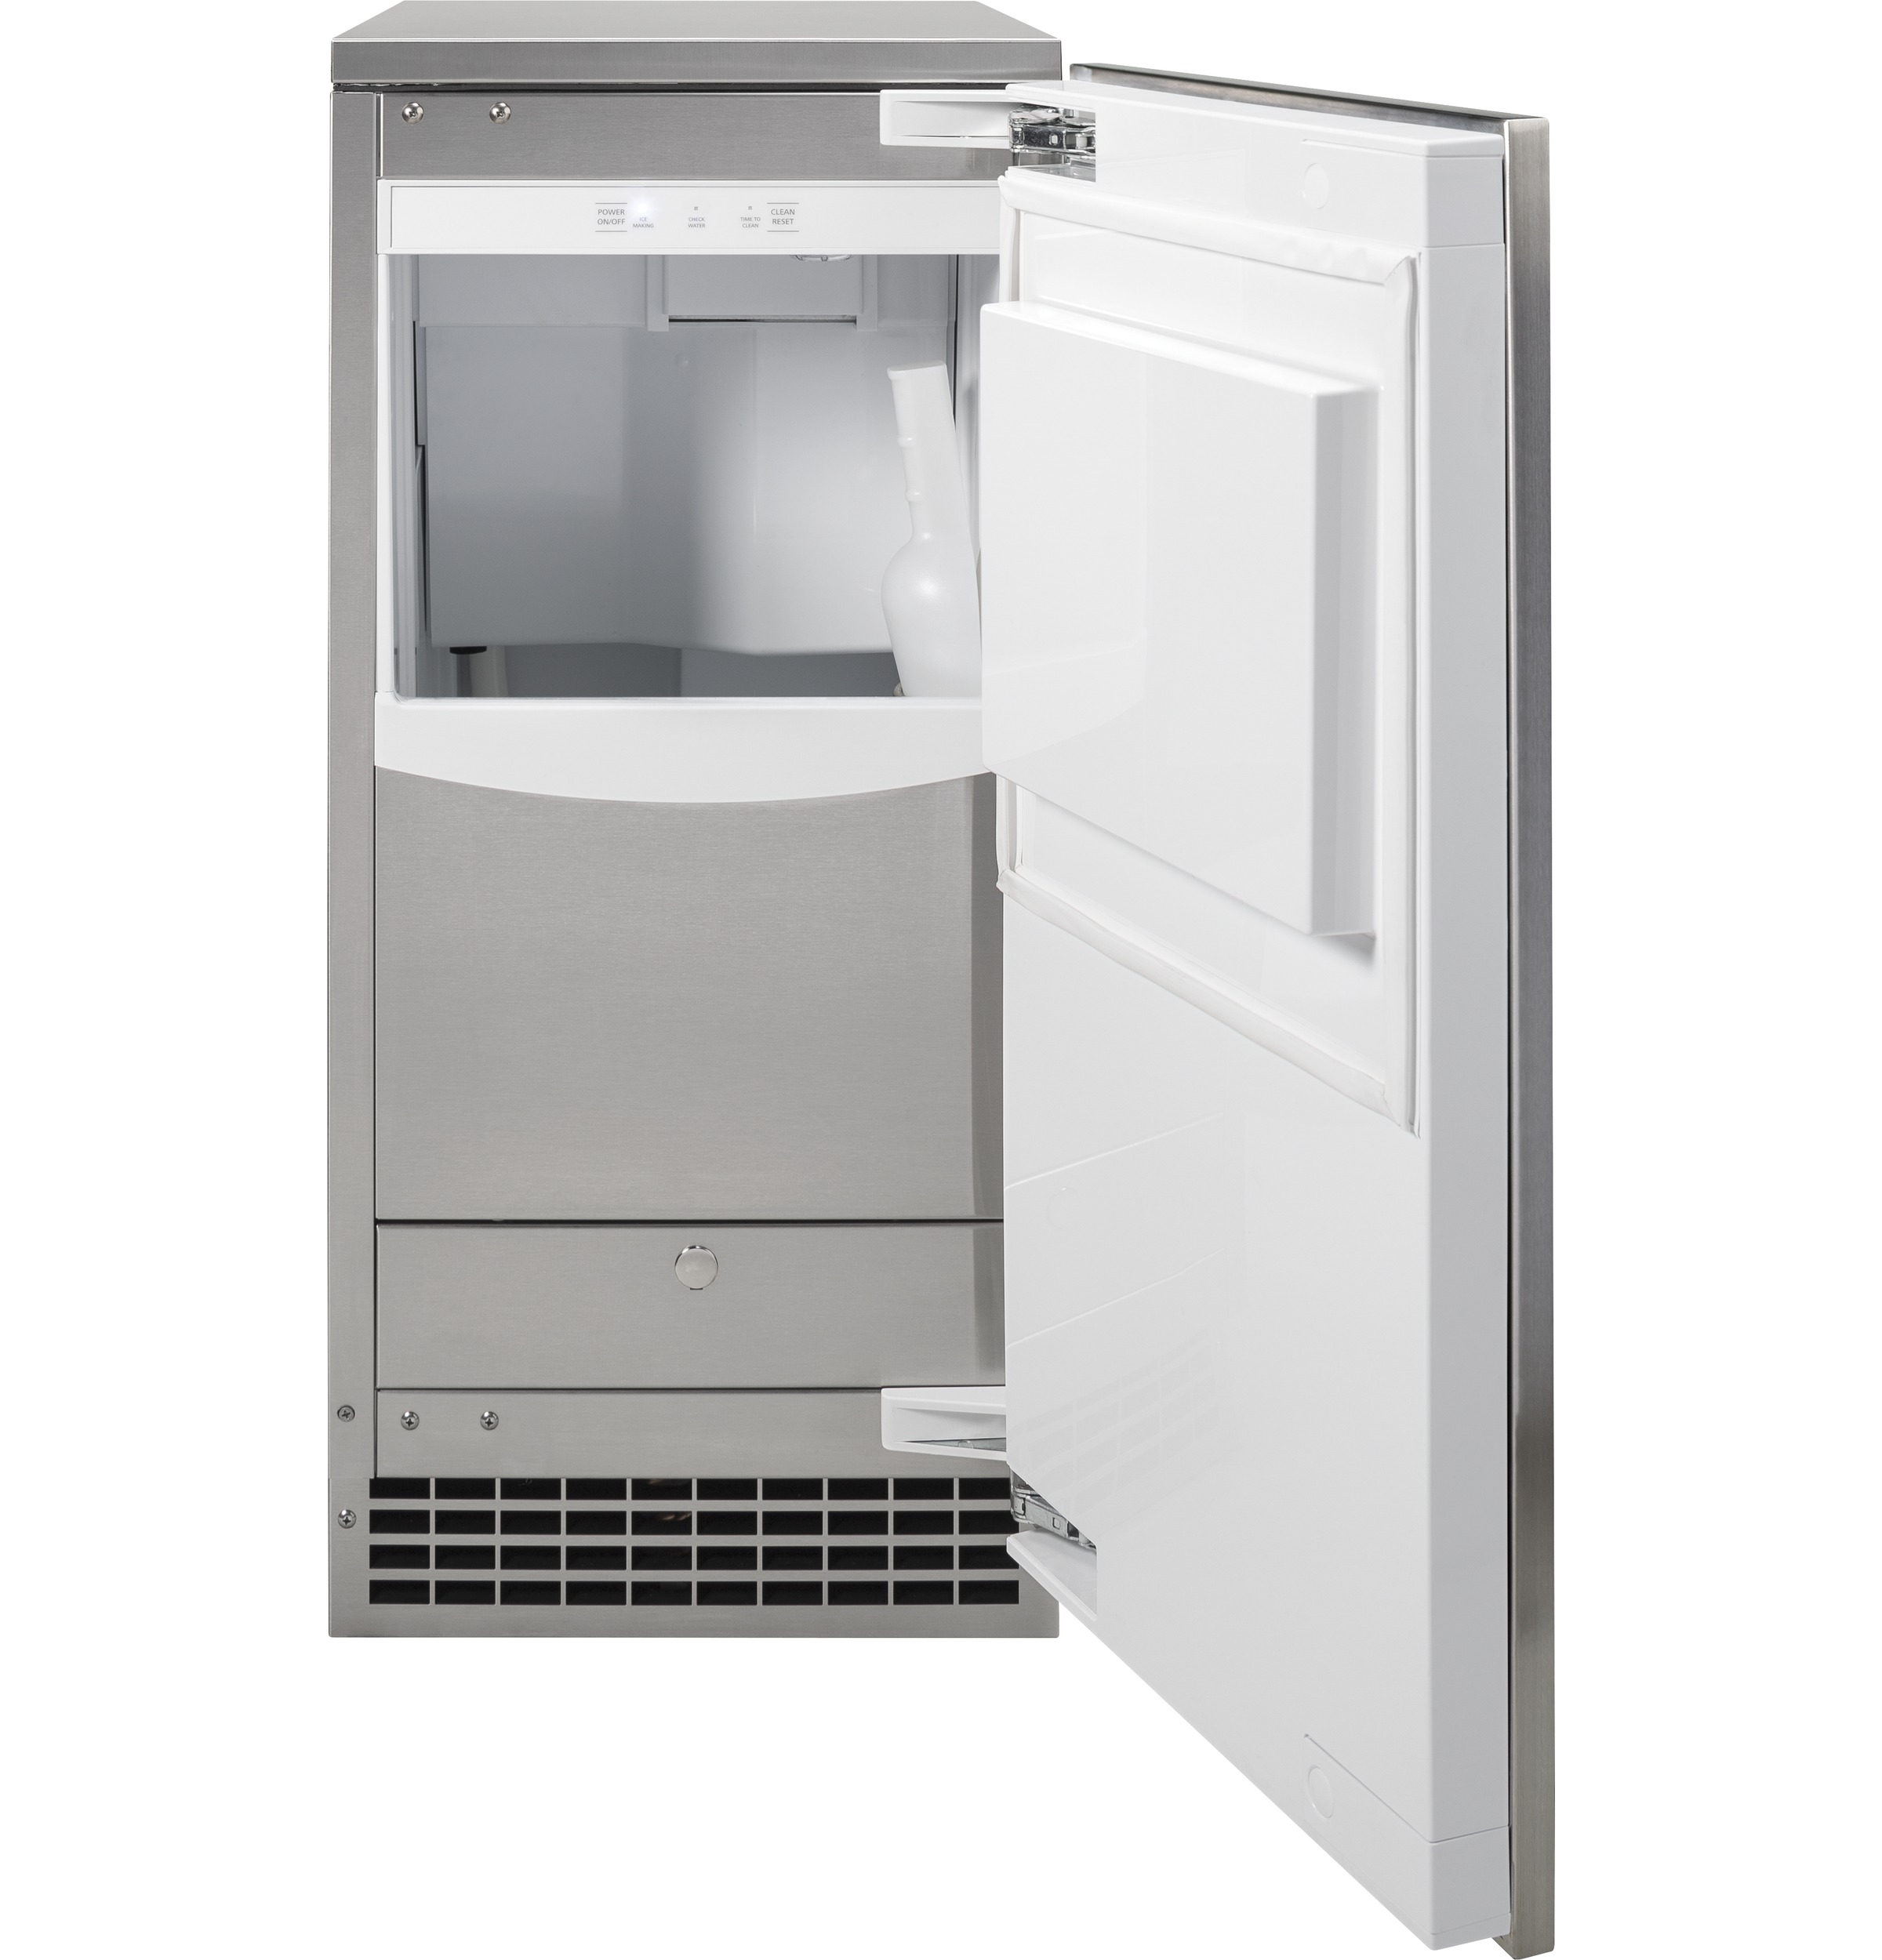 Model: UNC15NJII | Ice Maker 15-Inch - Nugget Ice